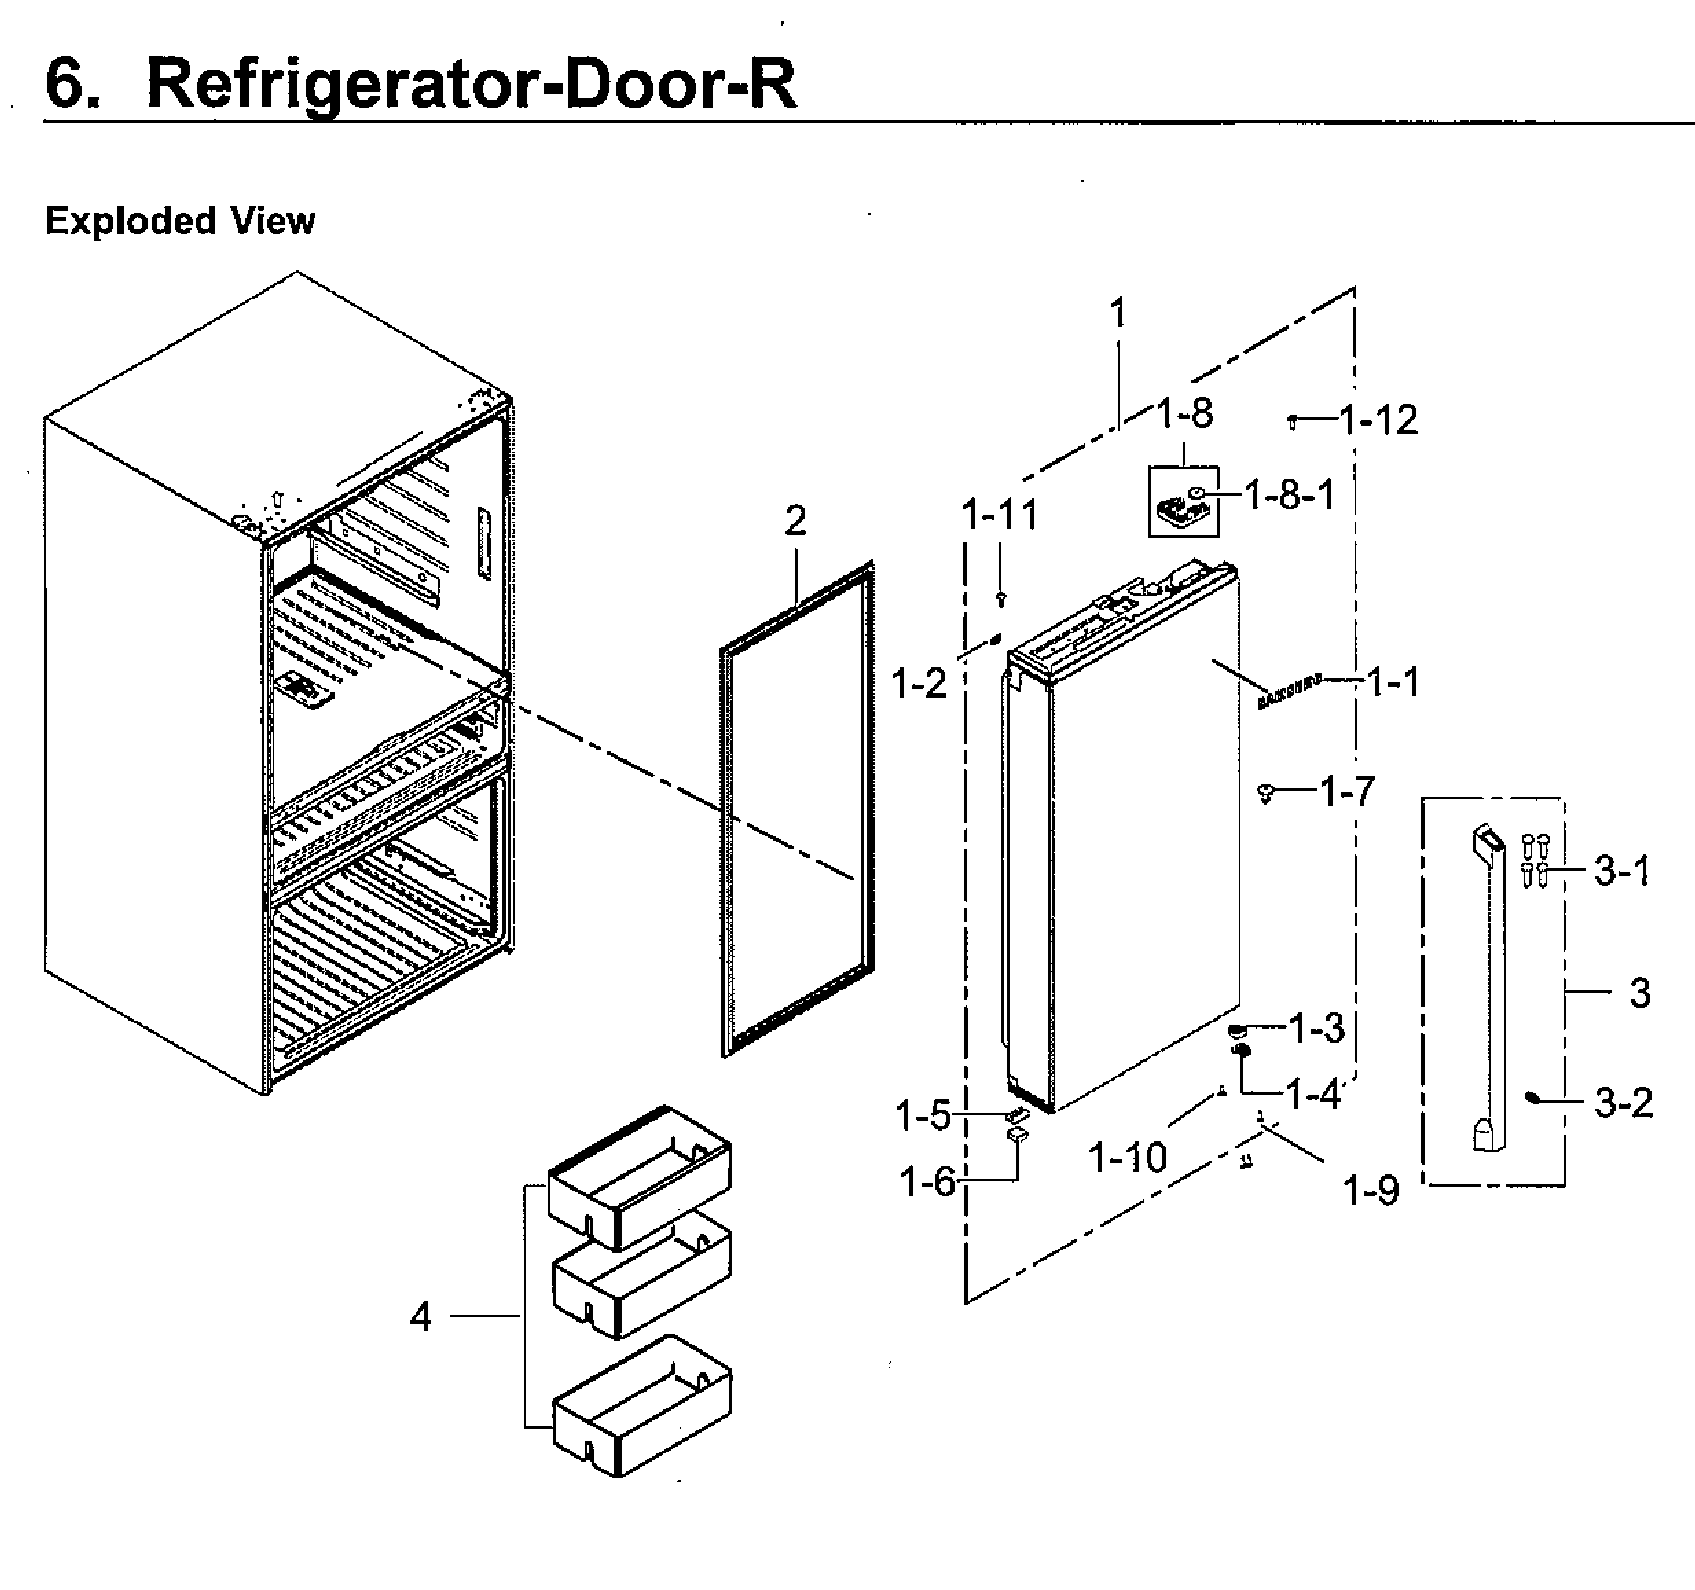 Samsung model RF23M8090SG/AA-00 bottom-mount refrigerator